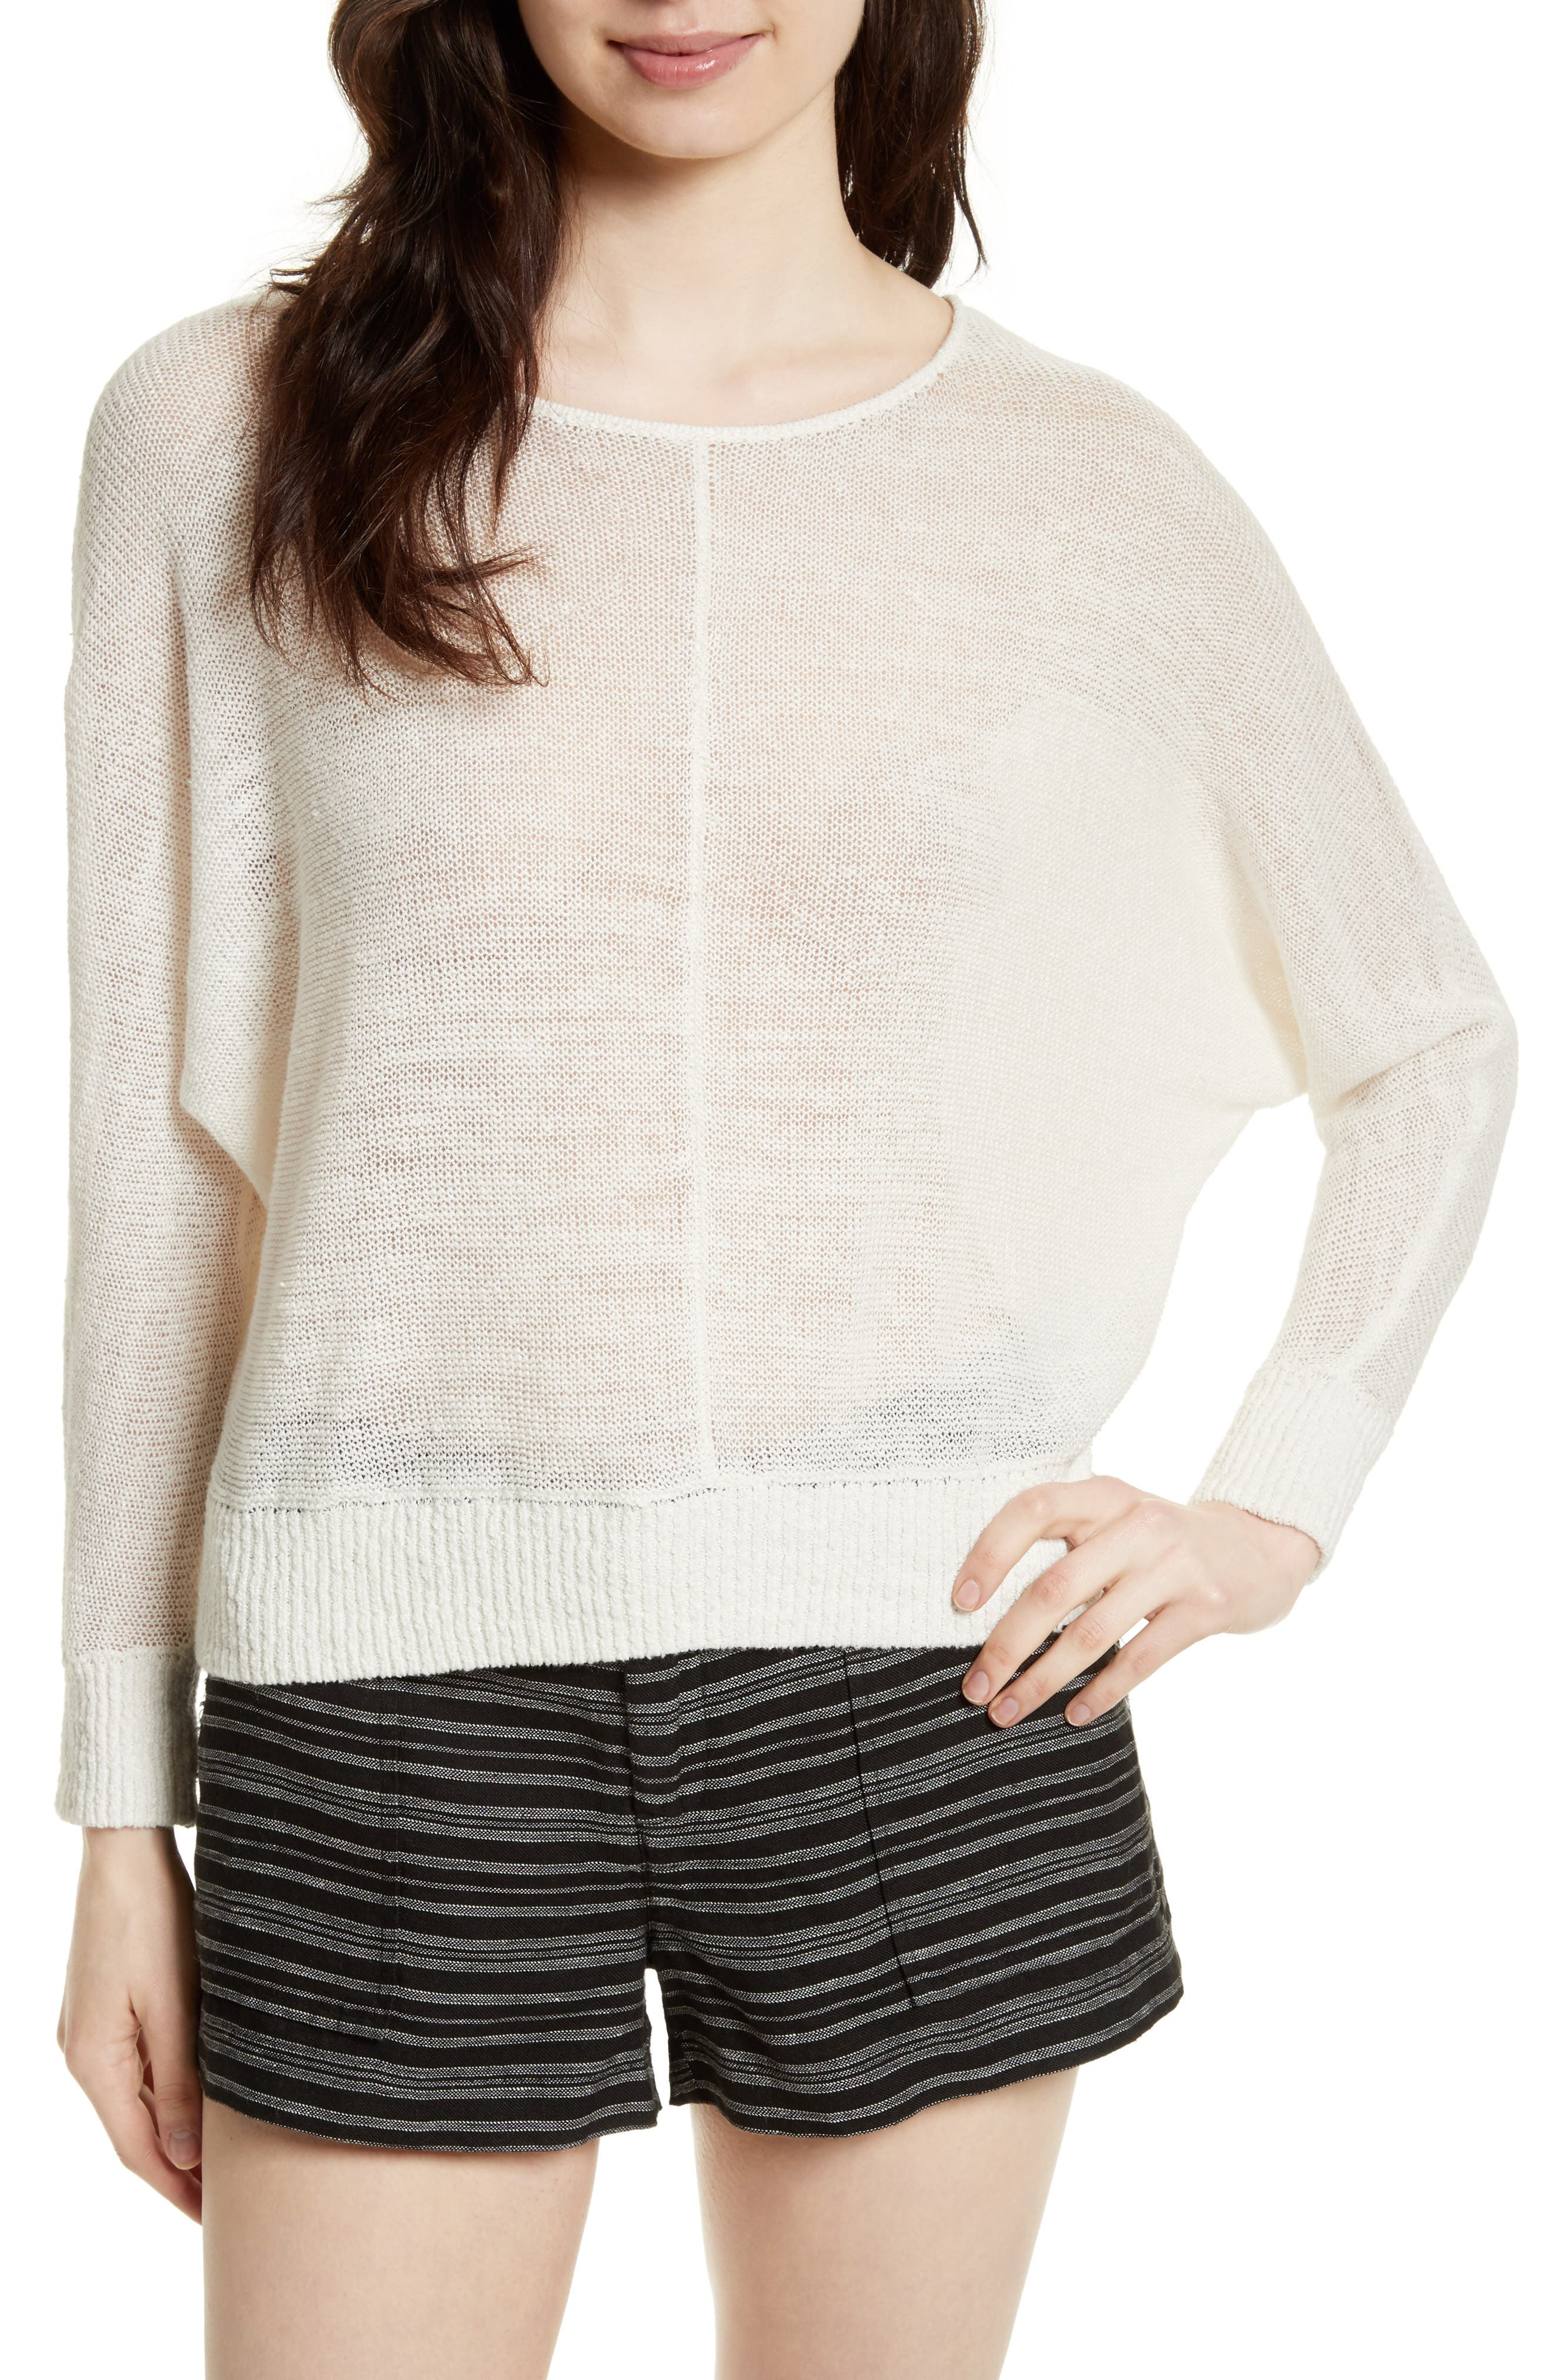 Alternate Image 1 Selected - Joie Clady Linen Open Knit Pullover